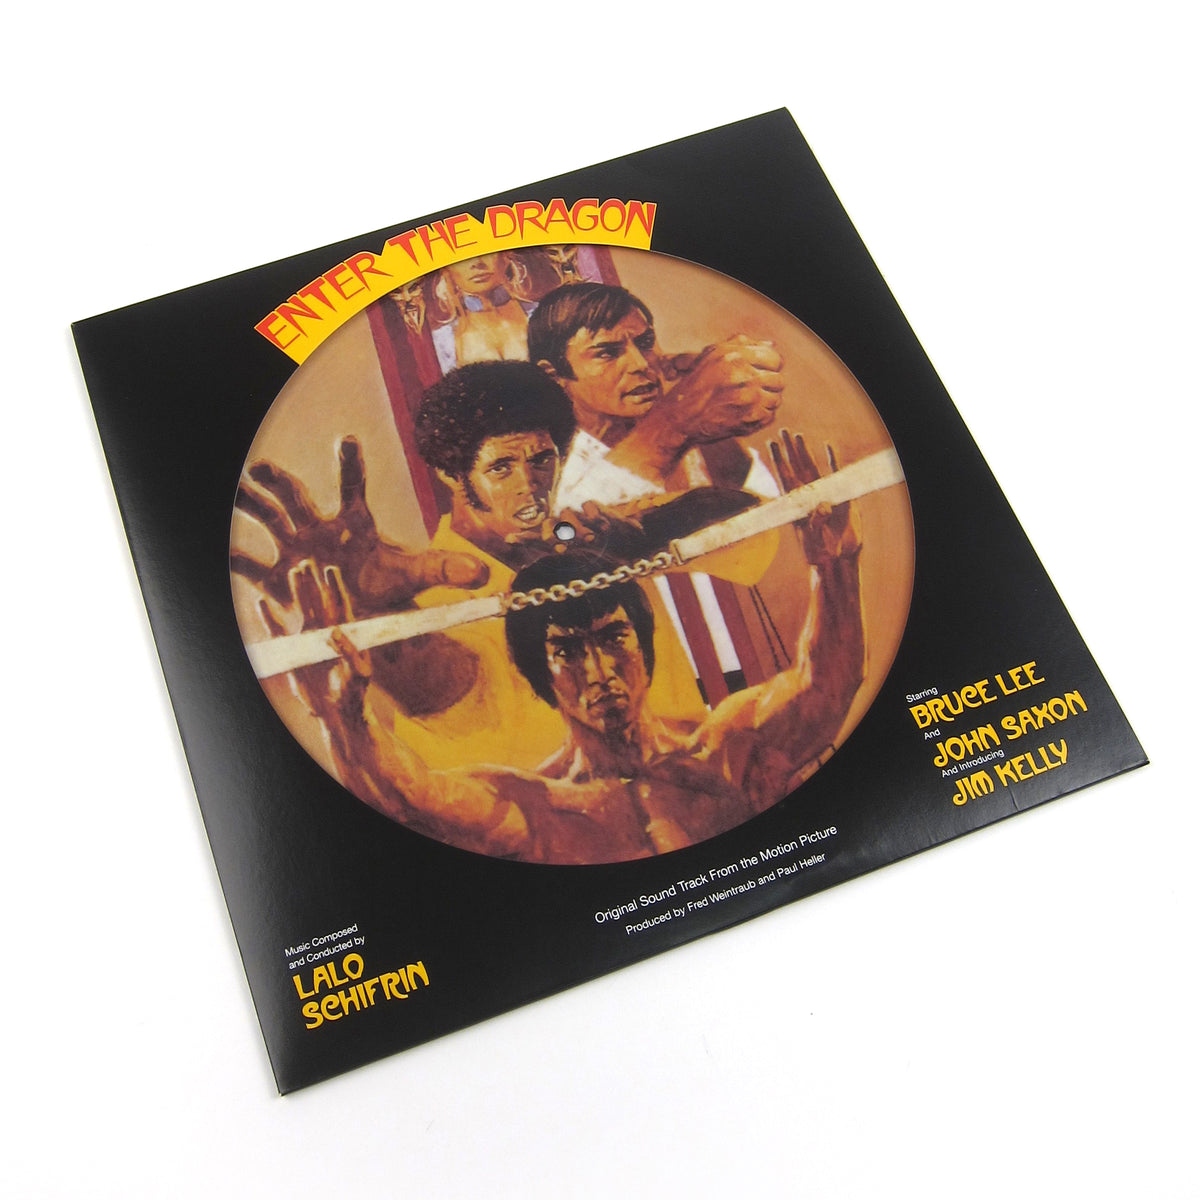 Lalo Schifrin: Enter The Dragon Soundtrack (Pic Disc) Vinyl LP (Record Store Day)